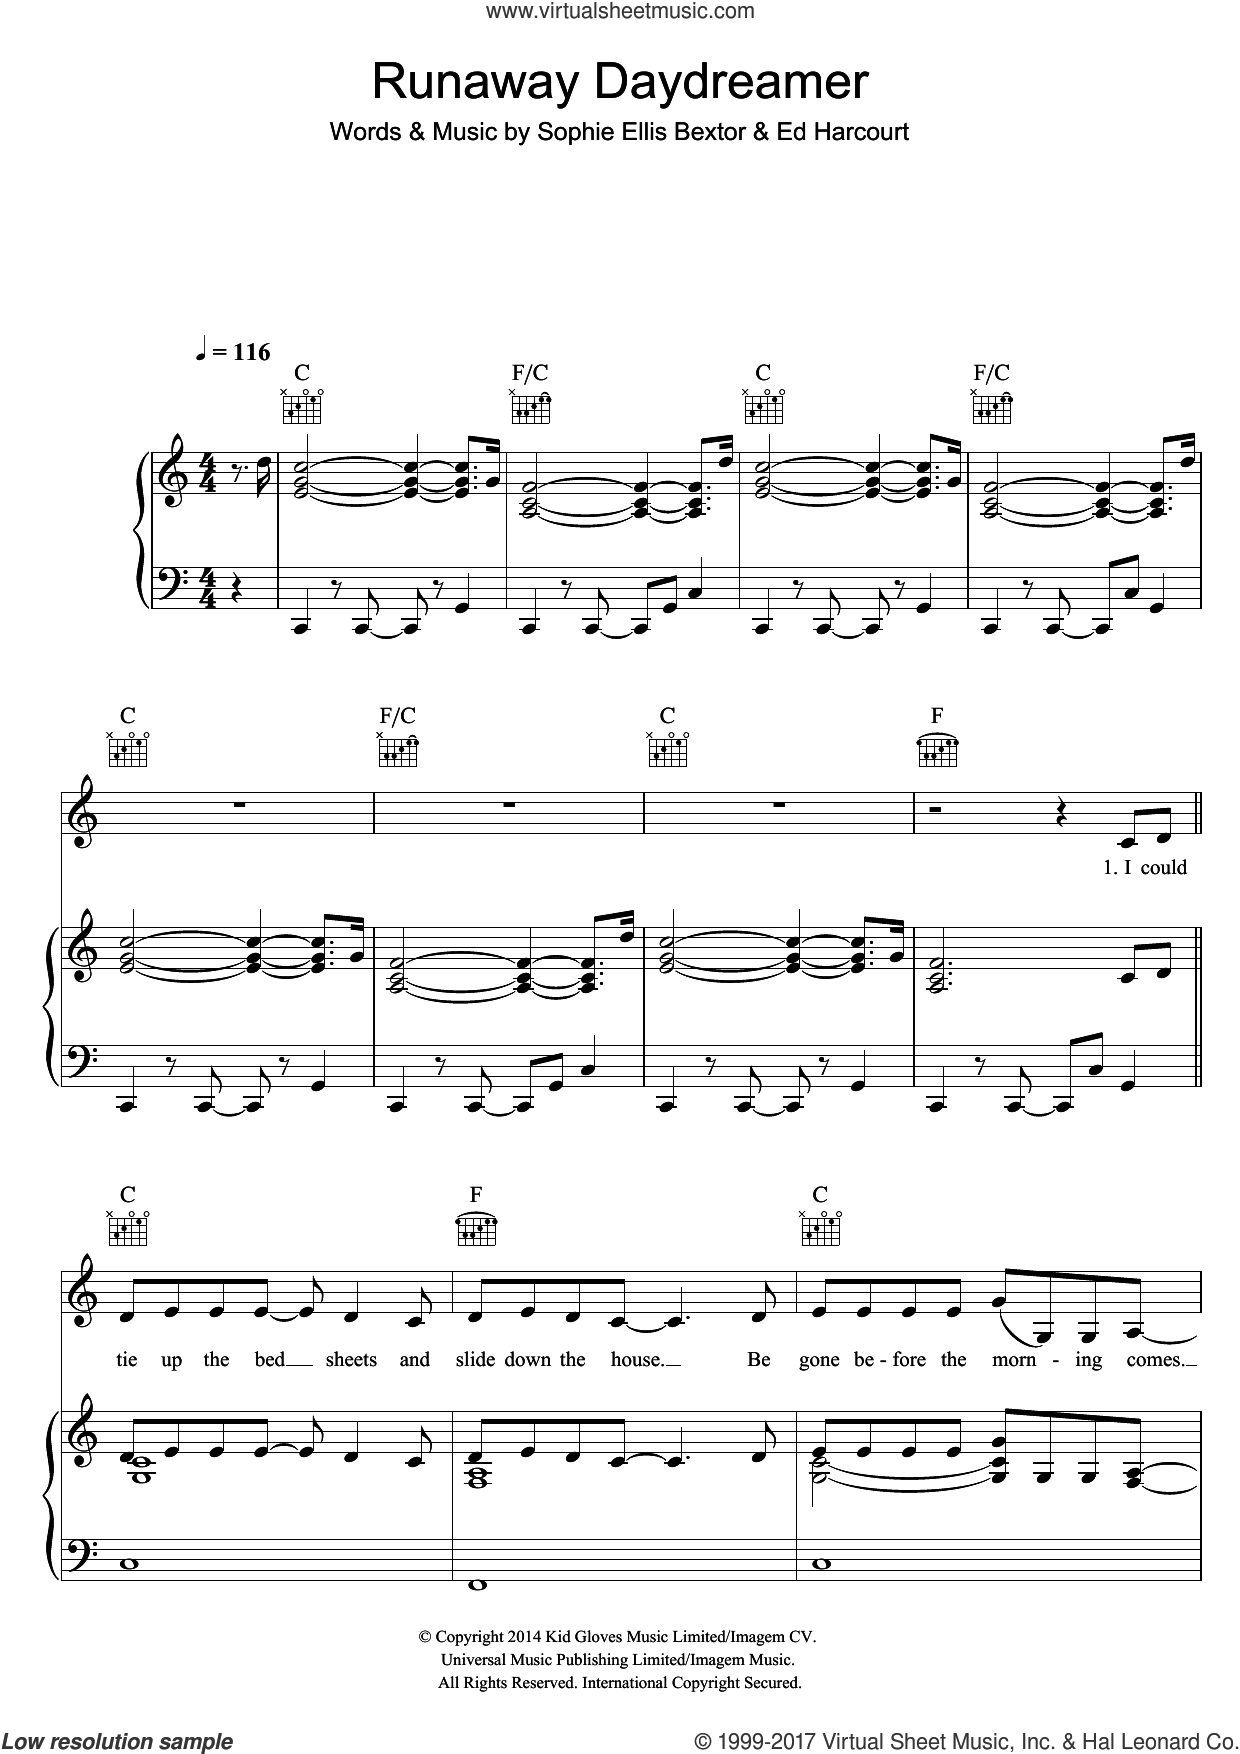 Runaway Daydreamer sheet music for voice, piano or guitar by Sophie Ellis-Bextor and Ed Harcourt, intermediate skill level